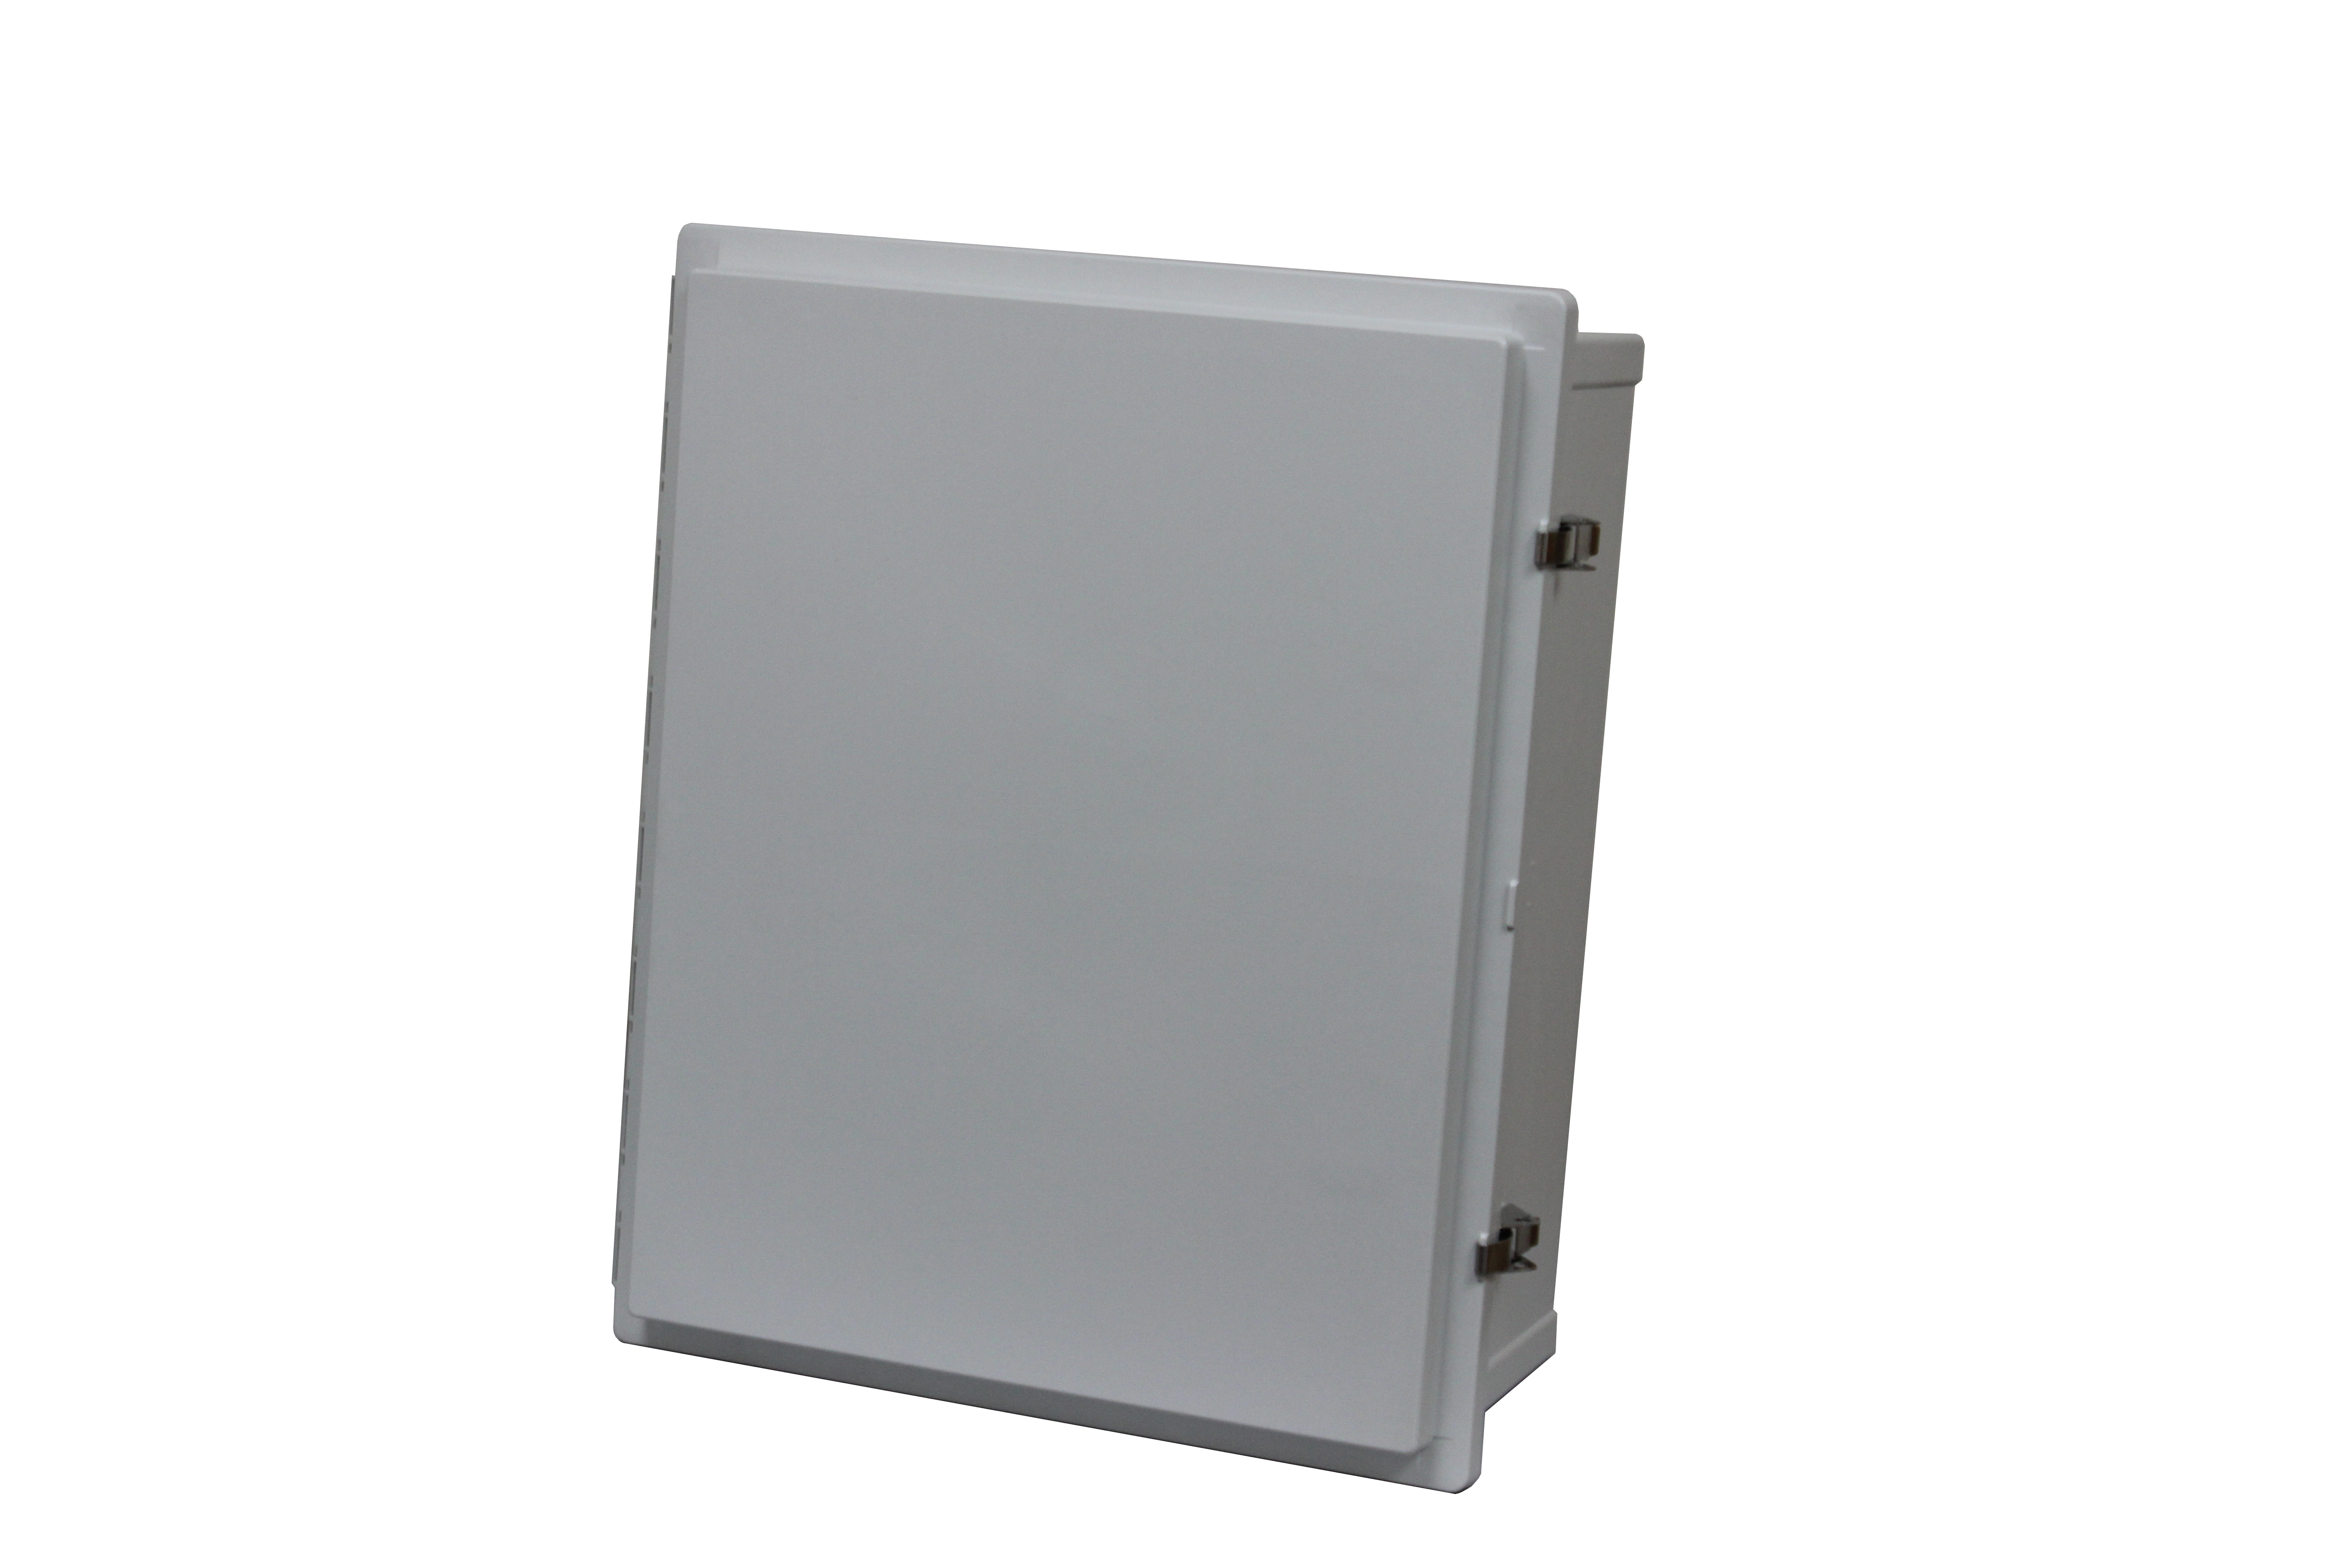 Hinged opaque covered large enclosure